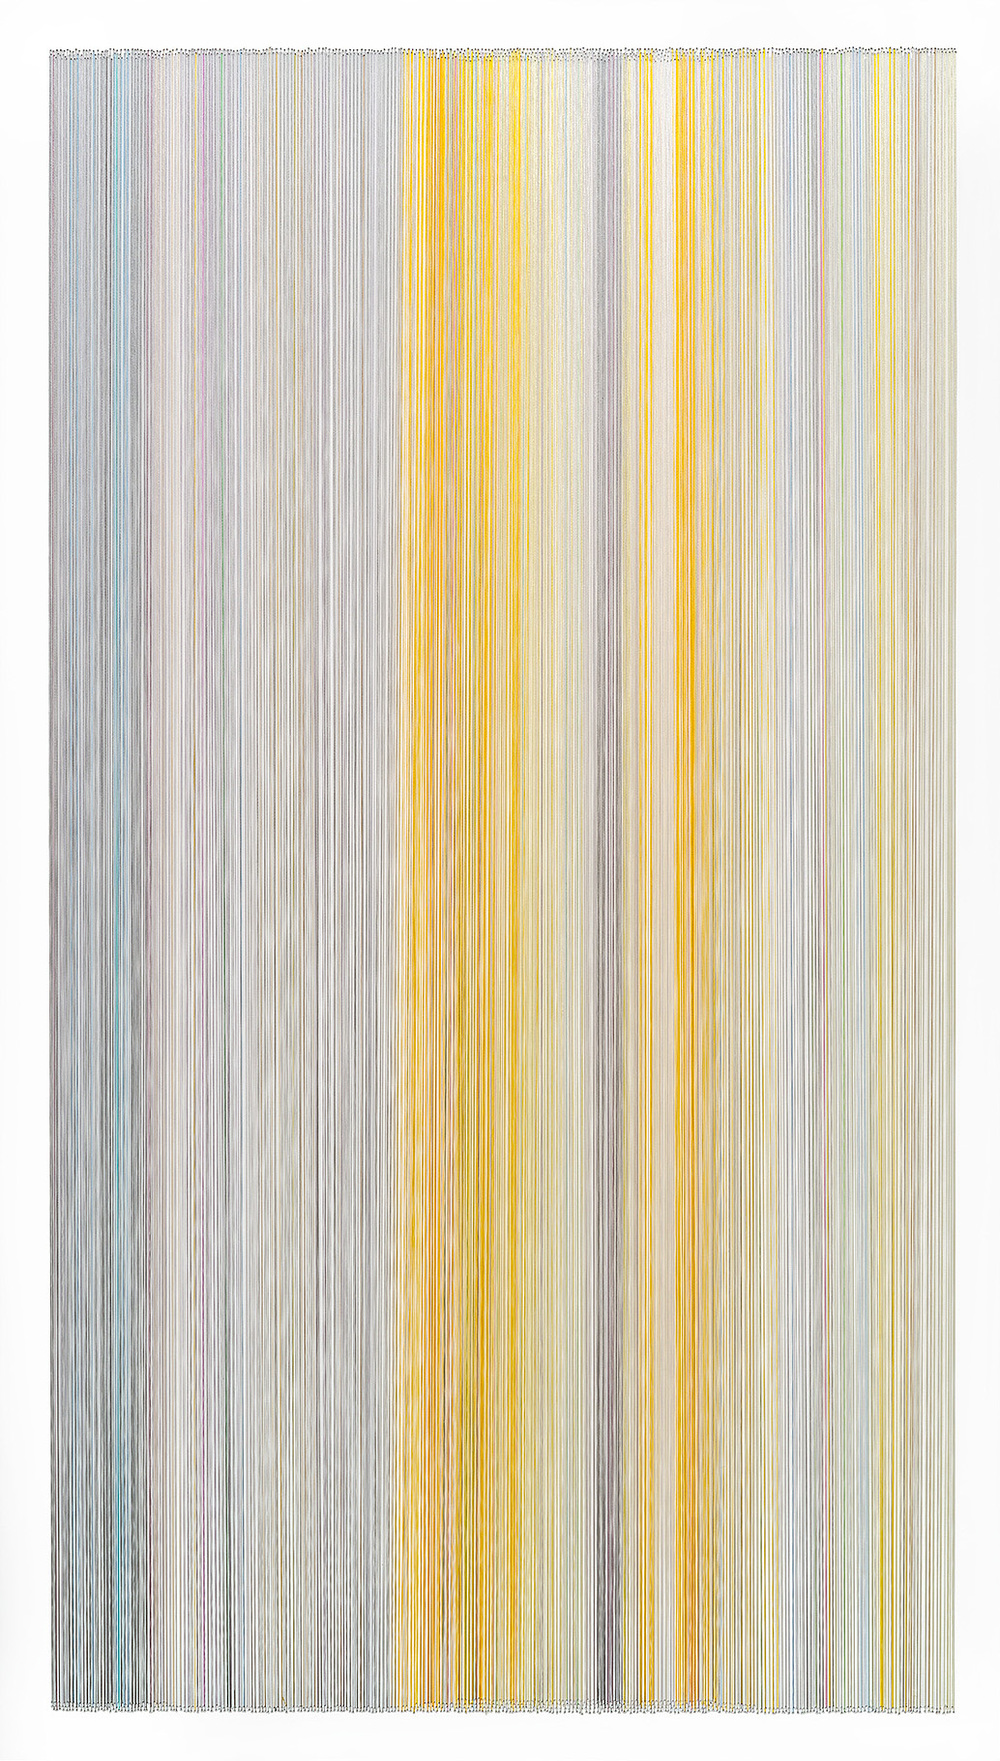 thread drawing 31  2014 rayon thread 42 by 24 inches